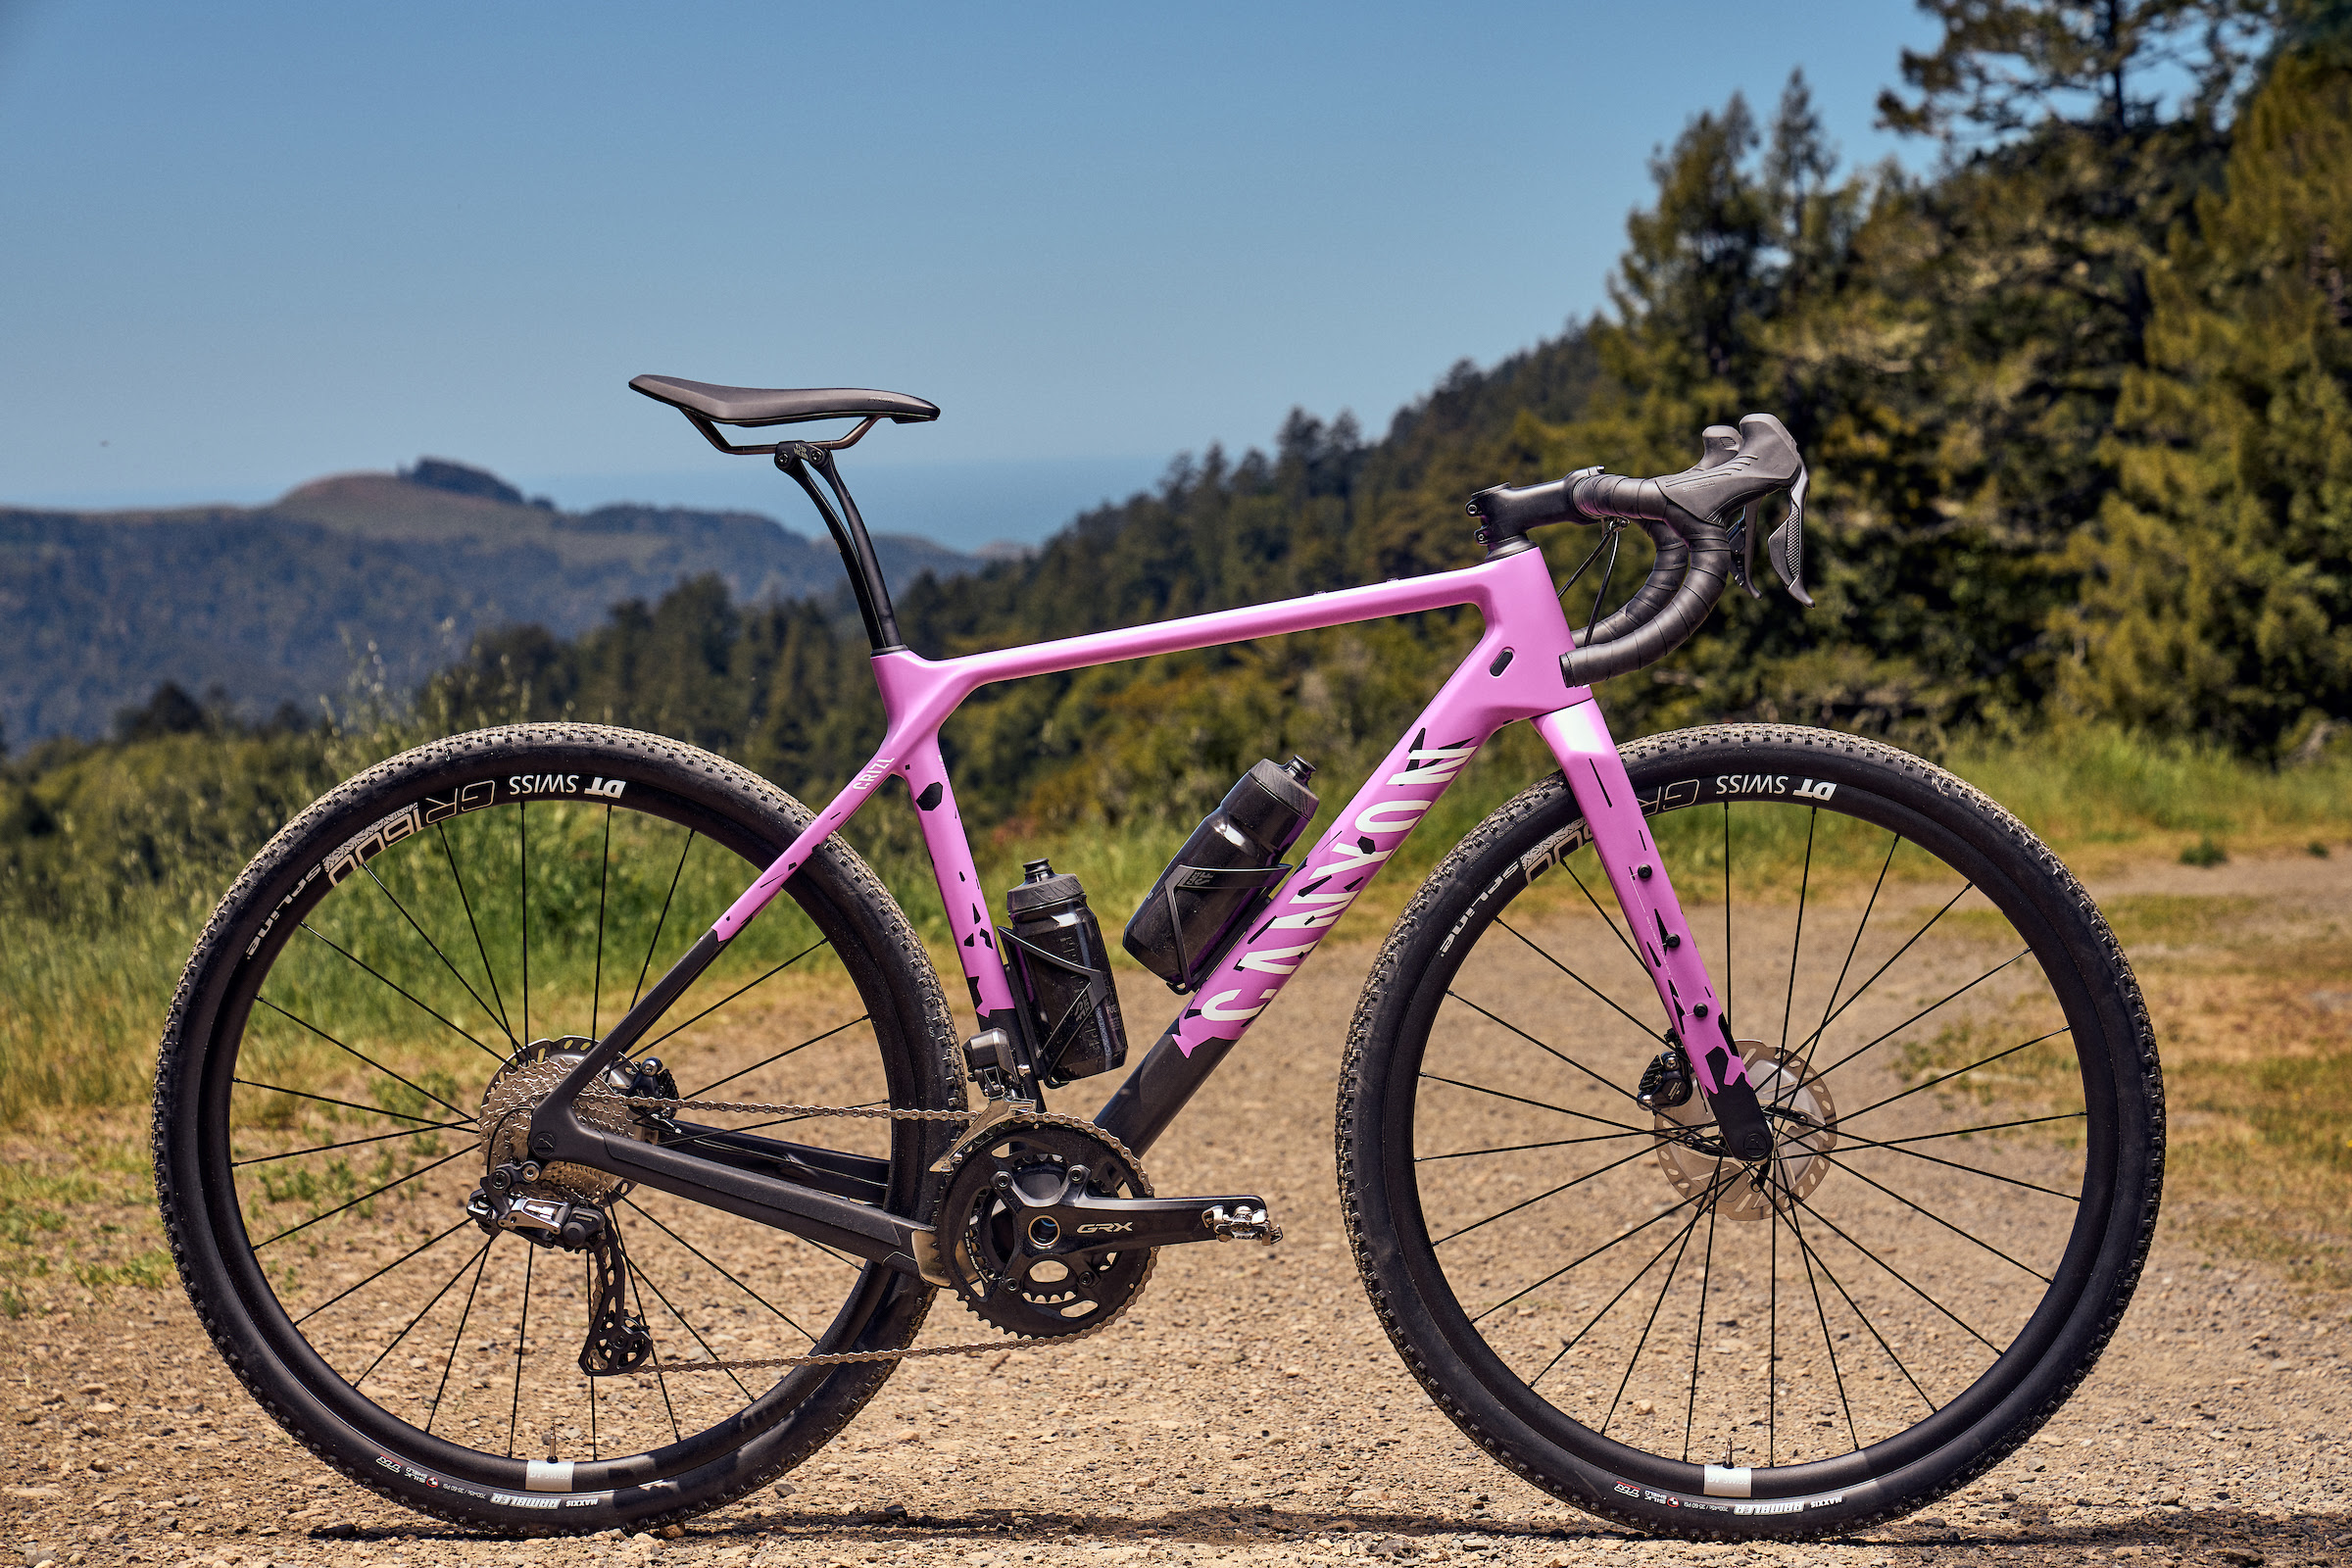 neon pink and crisp new Canyon Grizl gravel bike on dirt and gravel trail